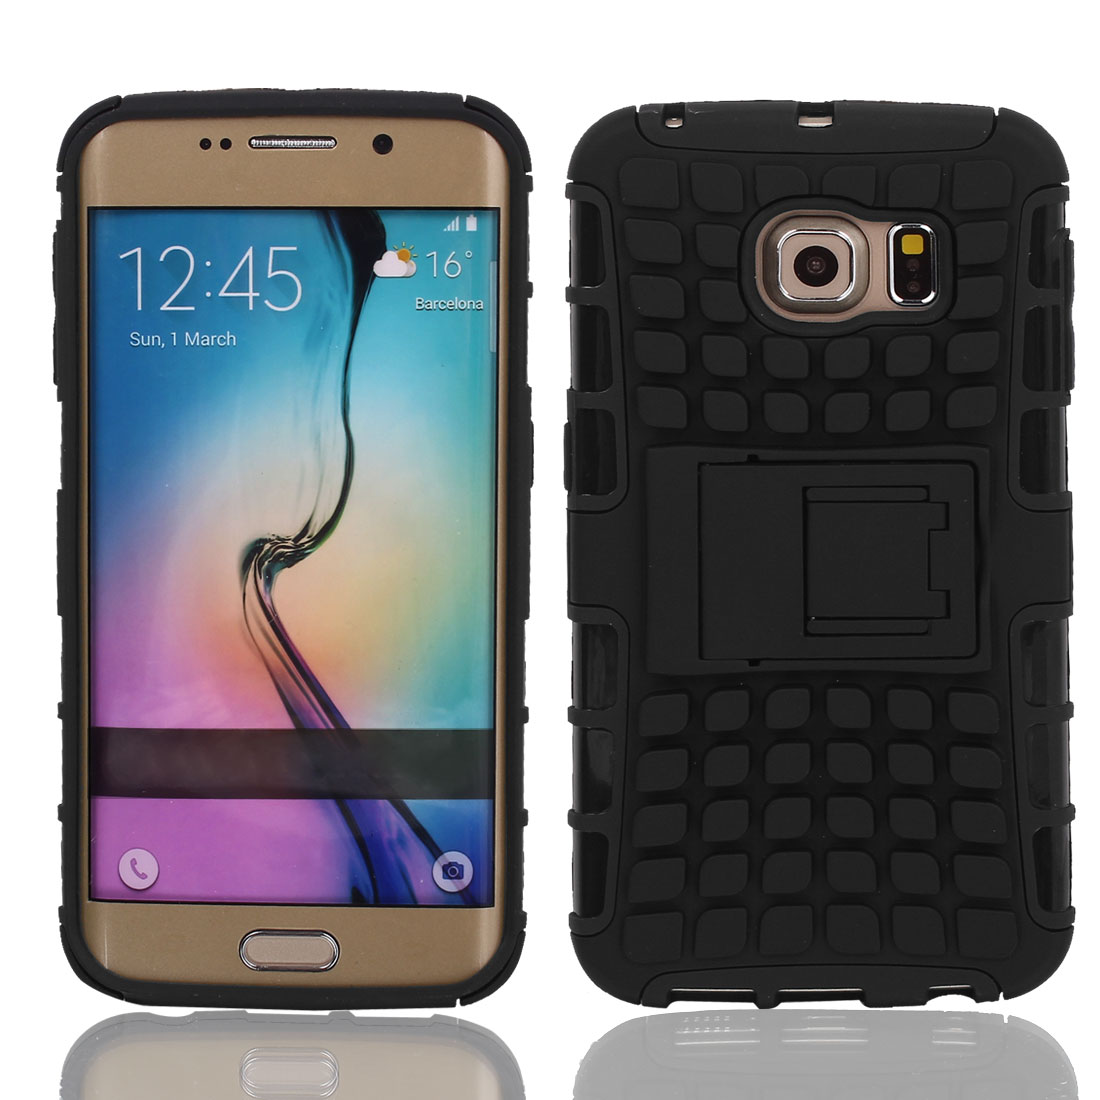 Shock Proof Tough Hard Stand Case Cover Black + Film for G9200 Galaxy S6